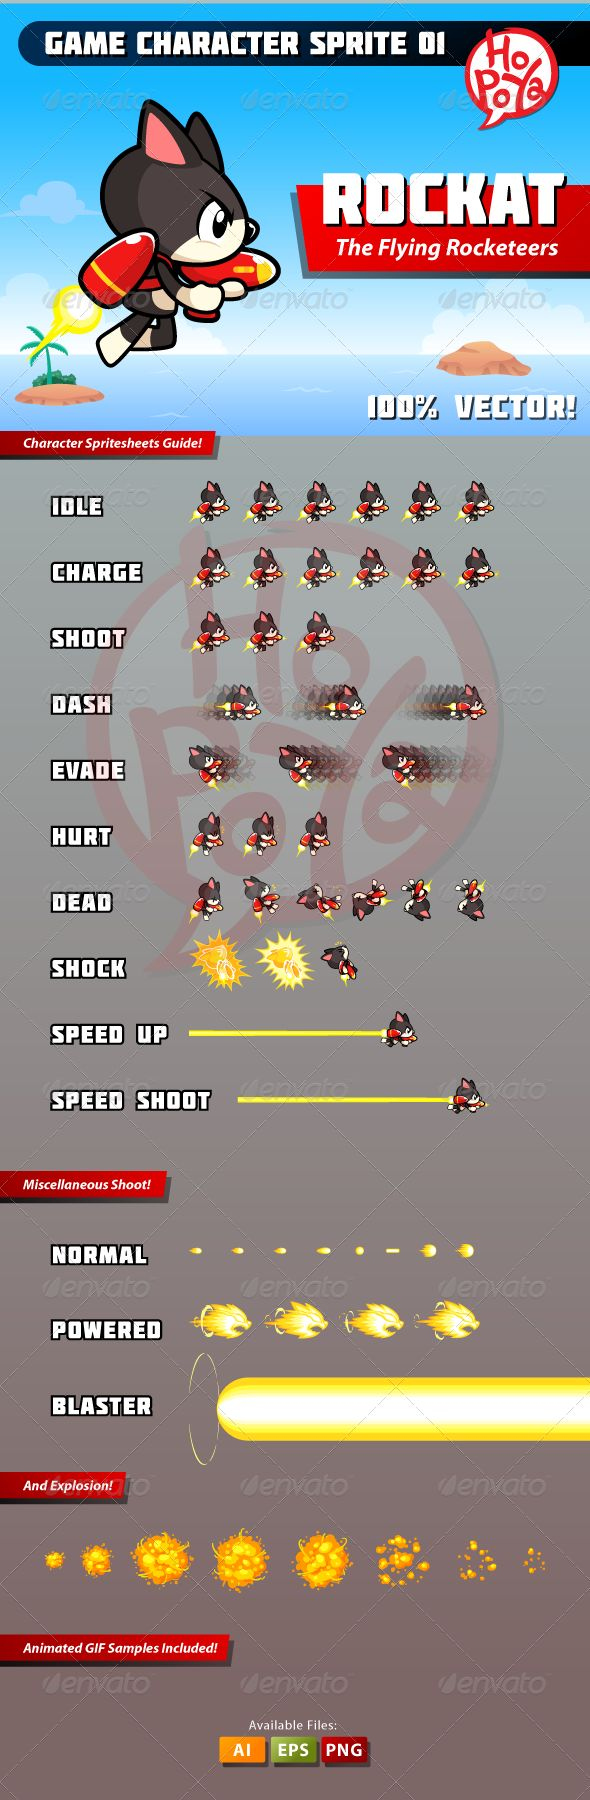 Game Character Sprite 01